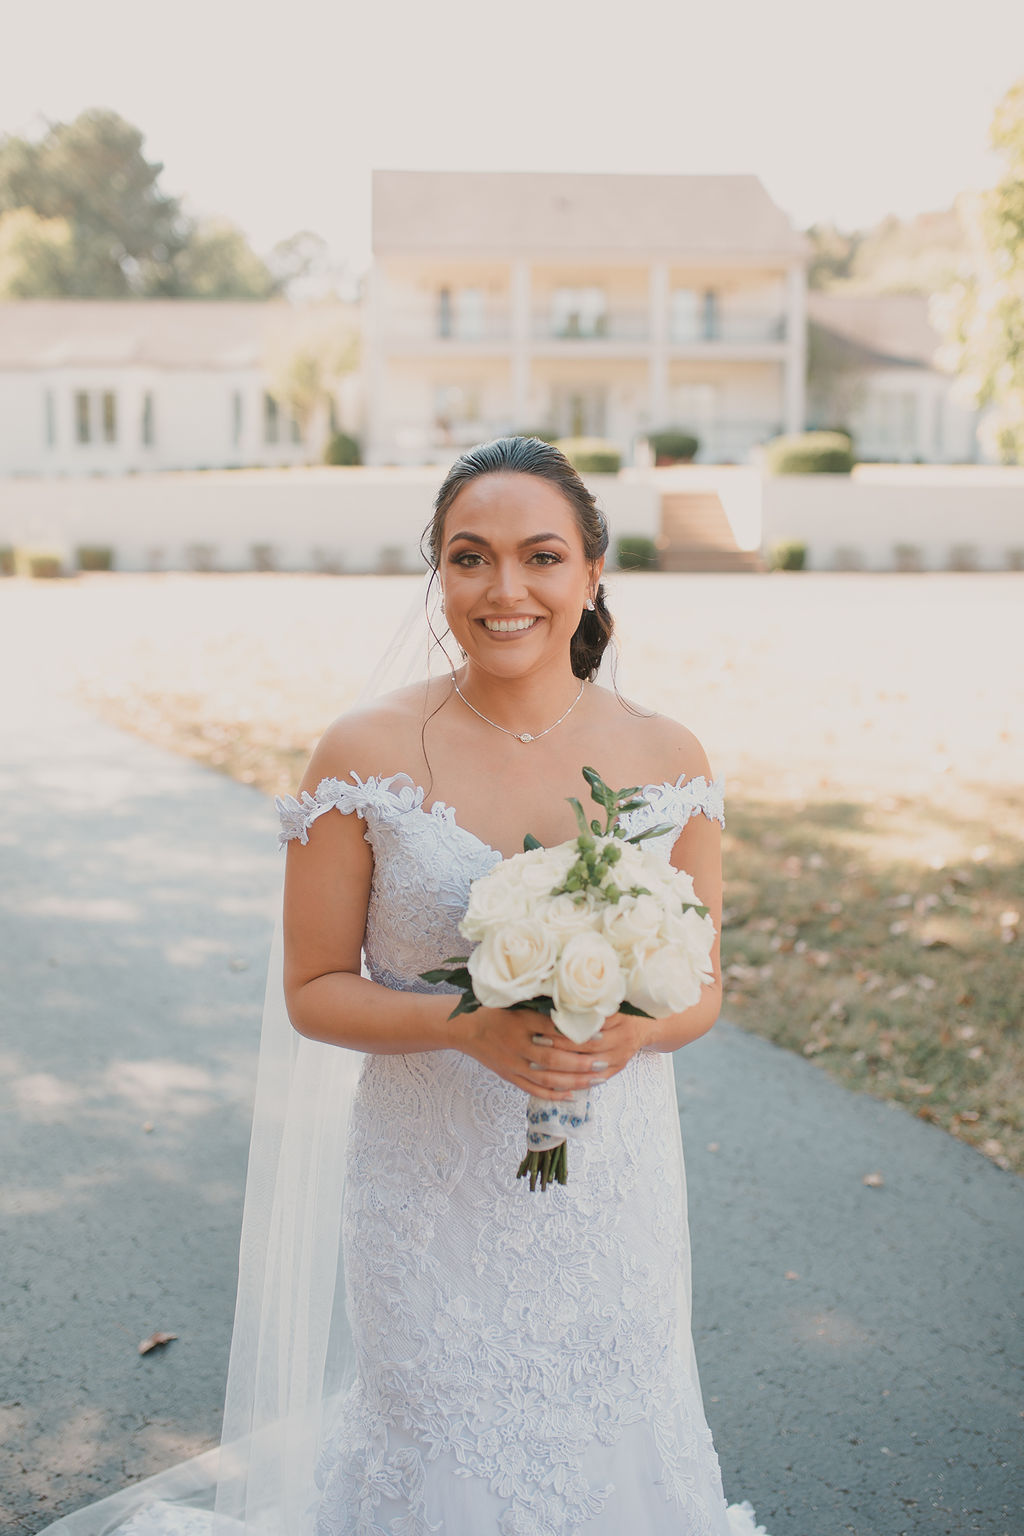 Bridal portrait: Romantic Outdoor Wedding at Reunion Stay